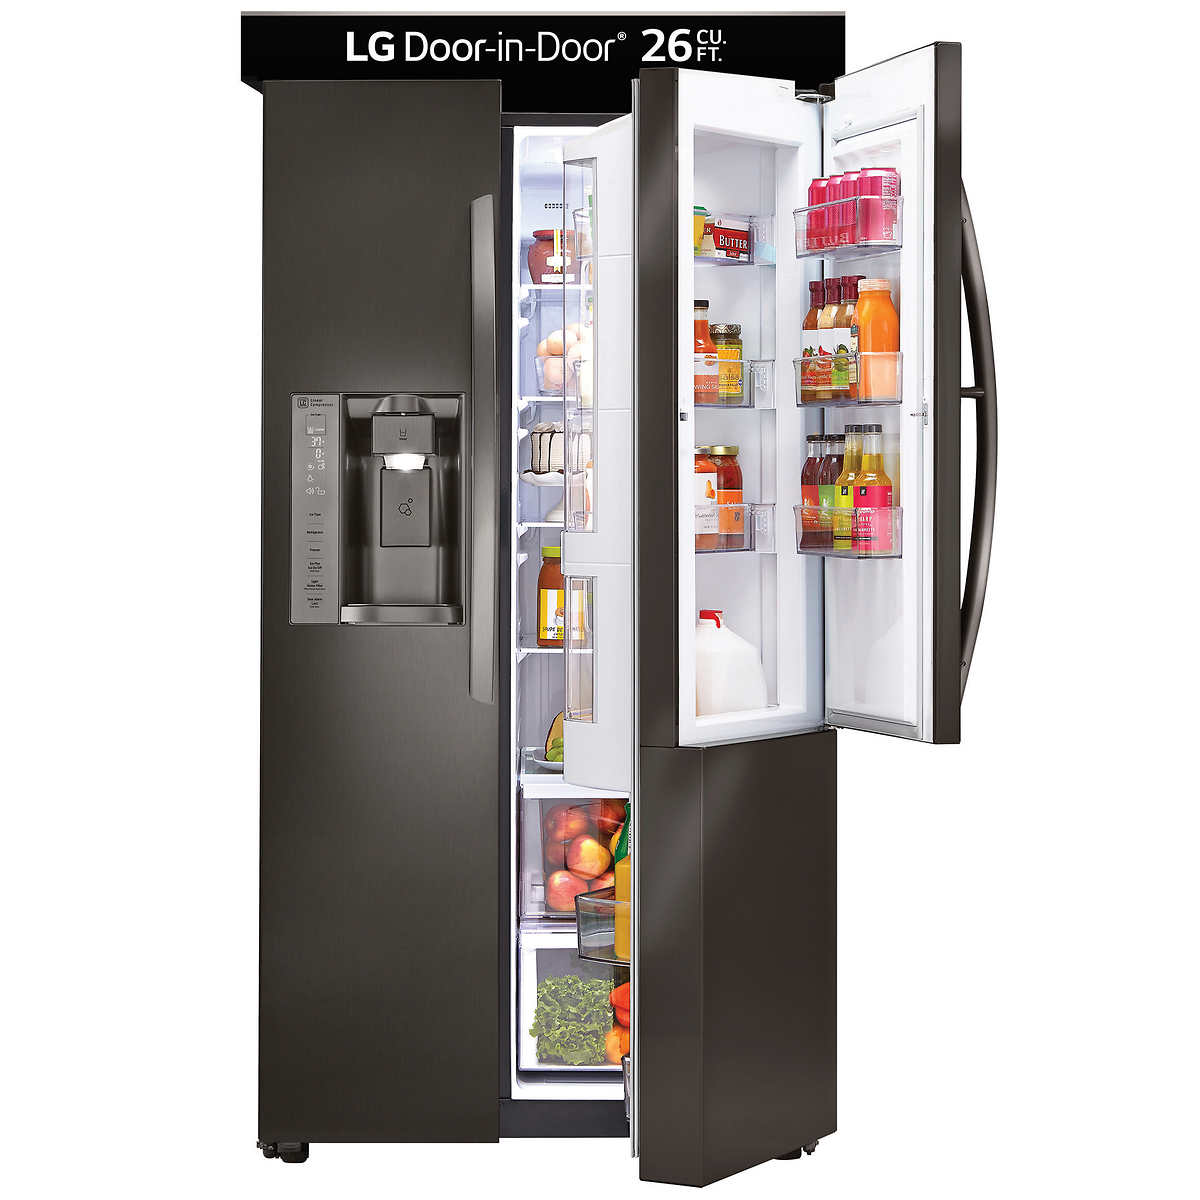 Ge 30 inch side by side white refrigerator - Lg 26cuft Side By Side Ultra Large Capacity With Door In Door